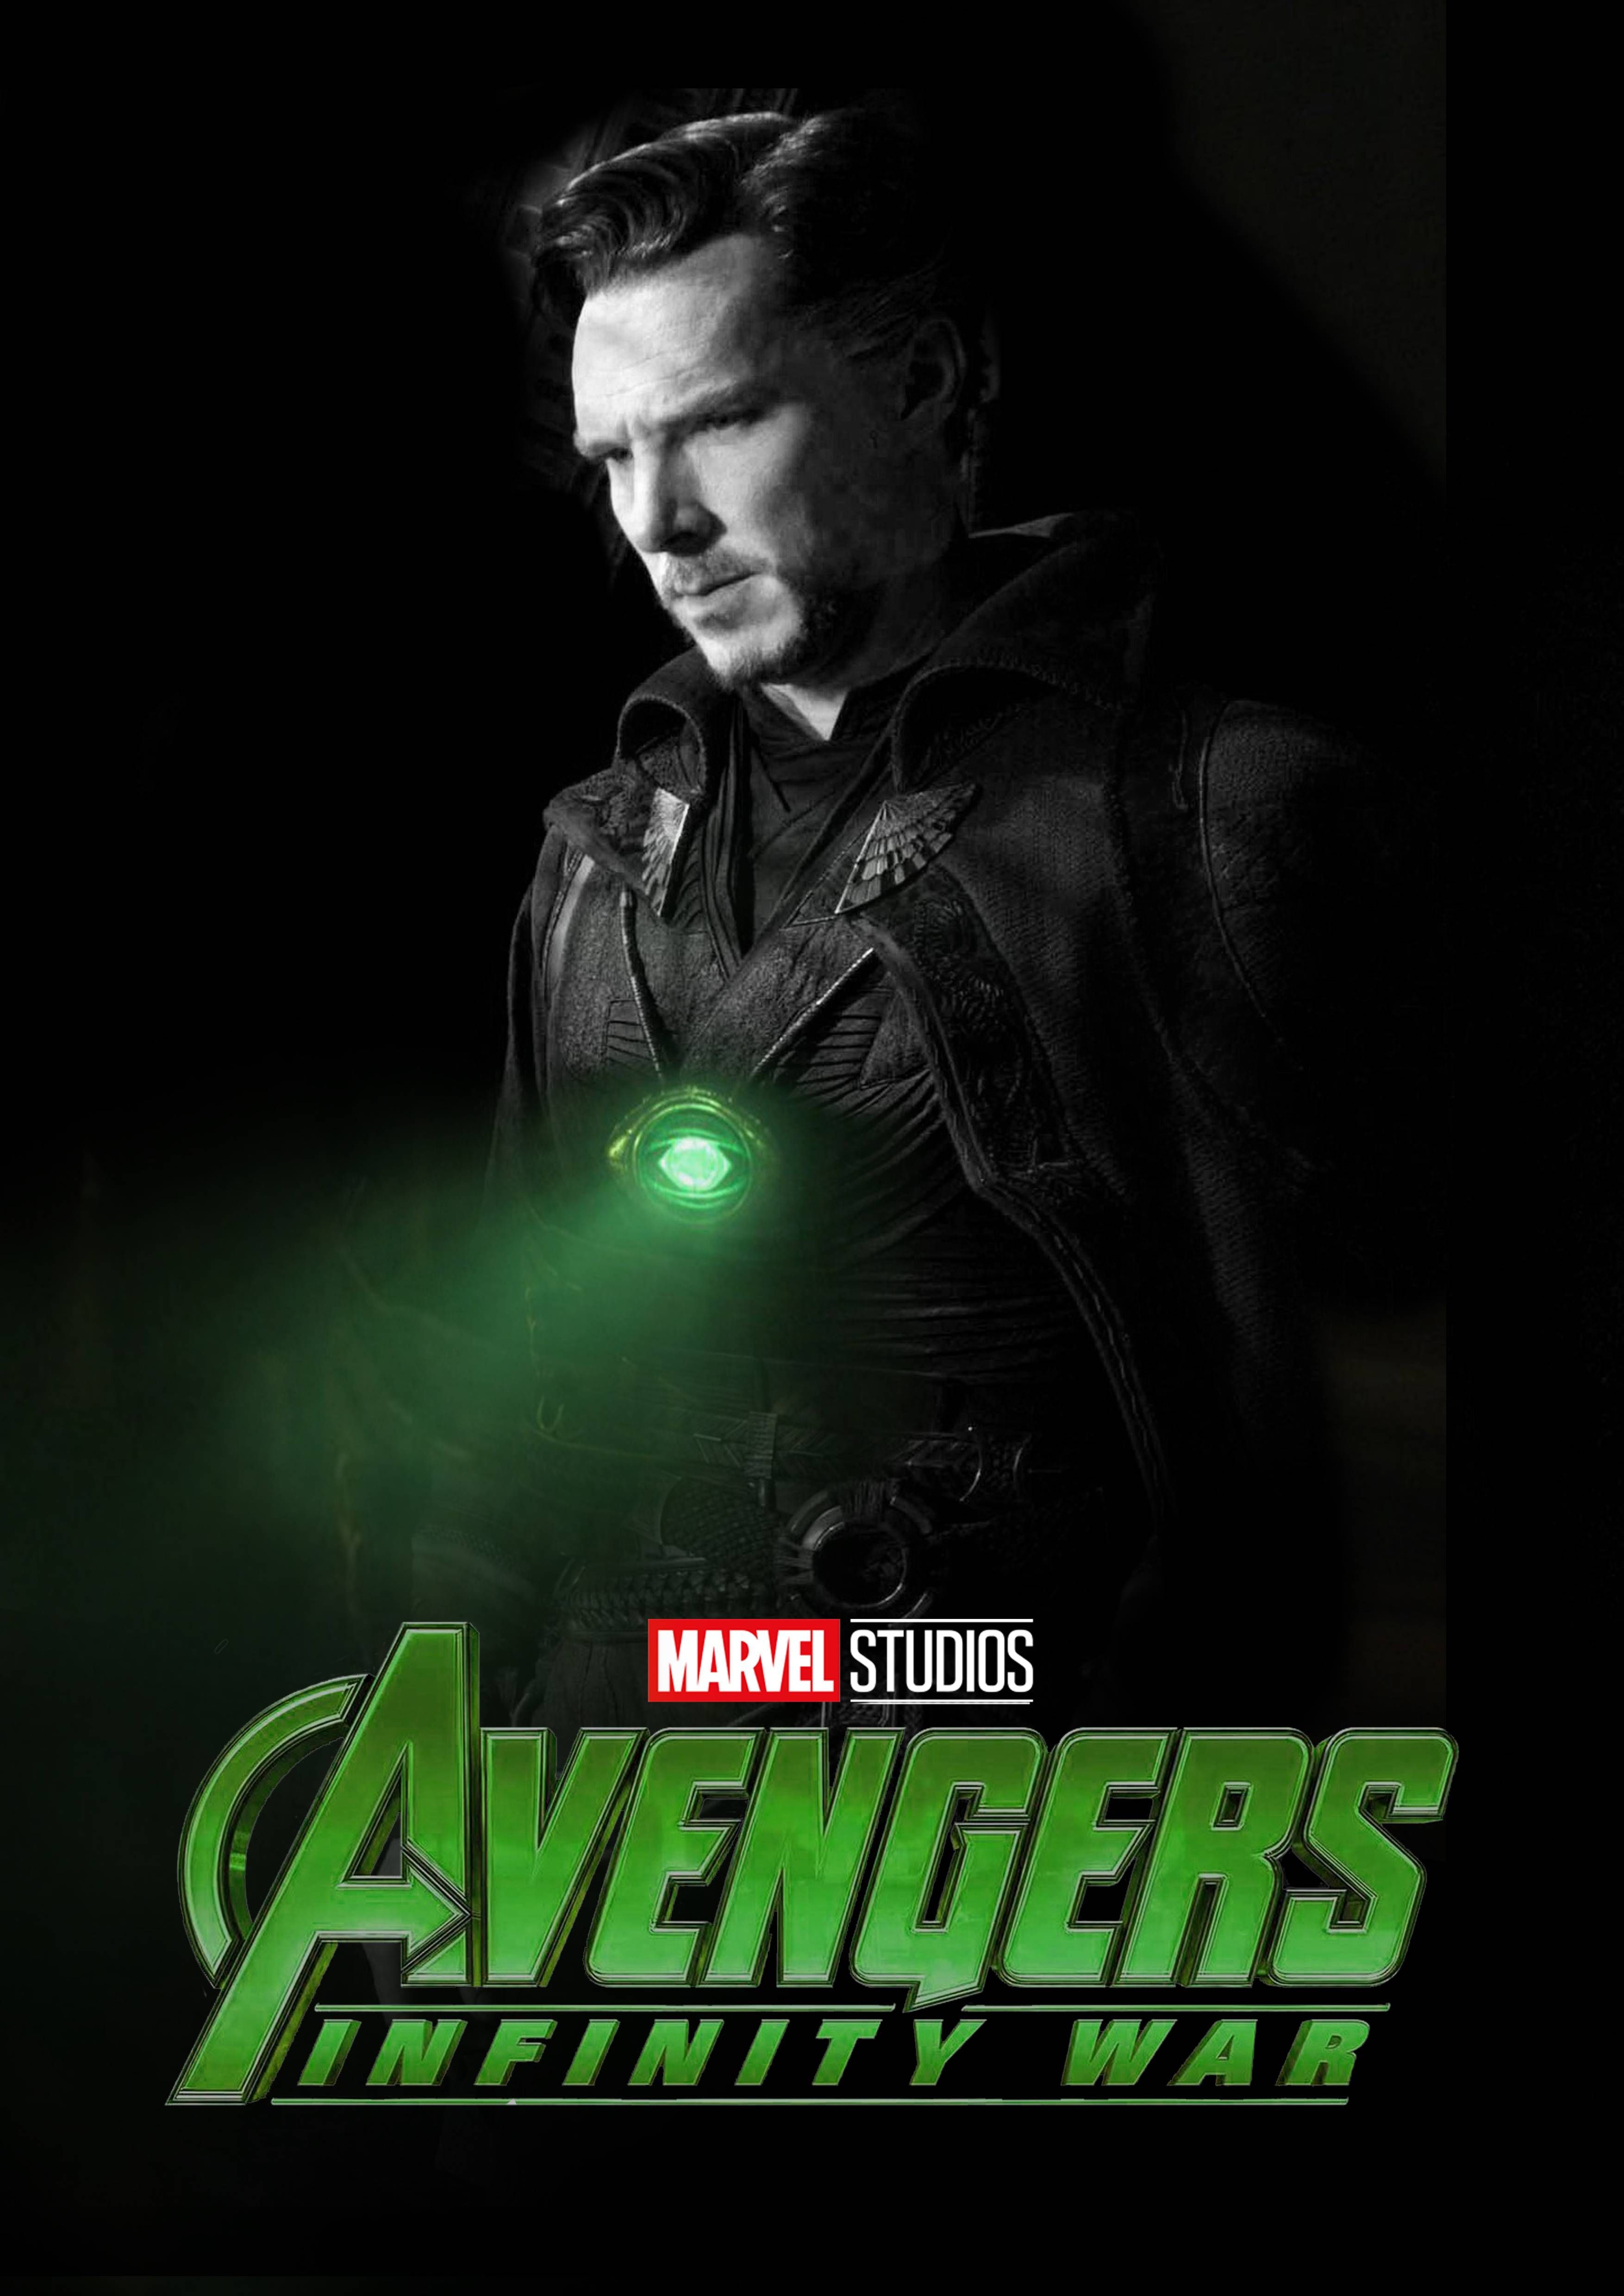 Avengers Infinity War One Sheet Poster New Maxi Size 36 x 24 Inch